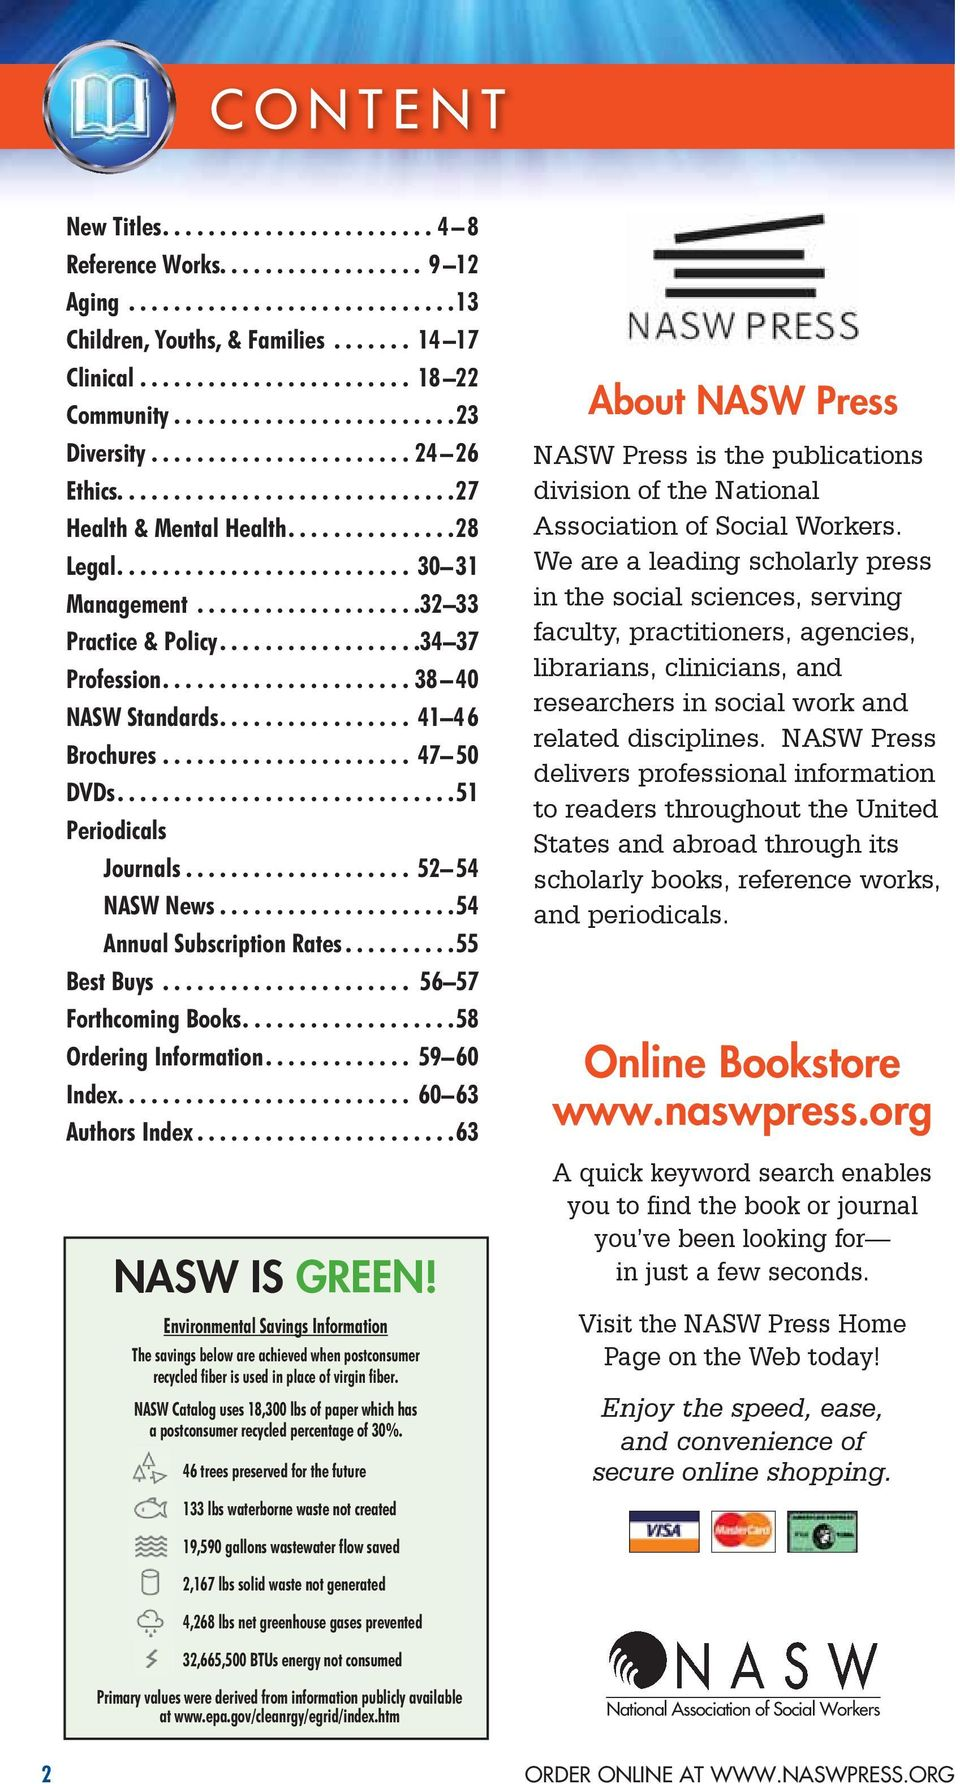 .. 52 54 NASW News.....................54 Annual Subscription Rates...55 Best Buys... 56 57 Forthcoming Books....58 Ordering Information.... 59 60 Index.... 60 63 Authors Index...63 NASW IS GREEN!